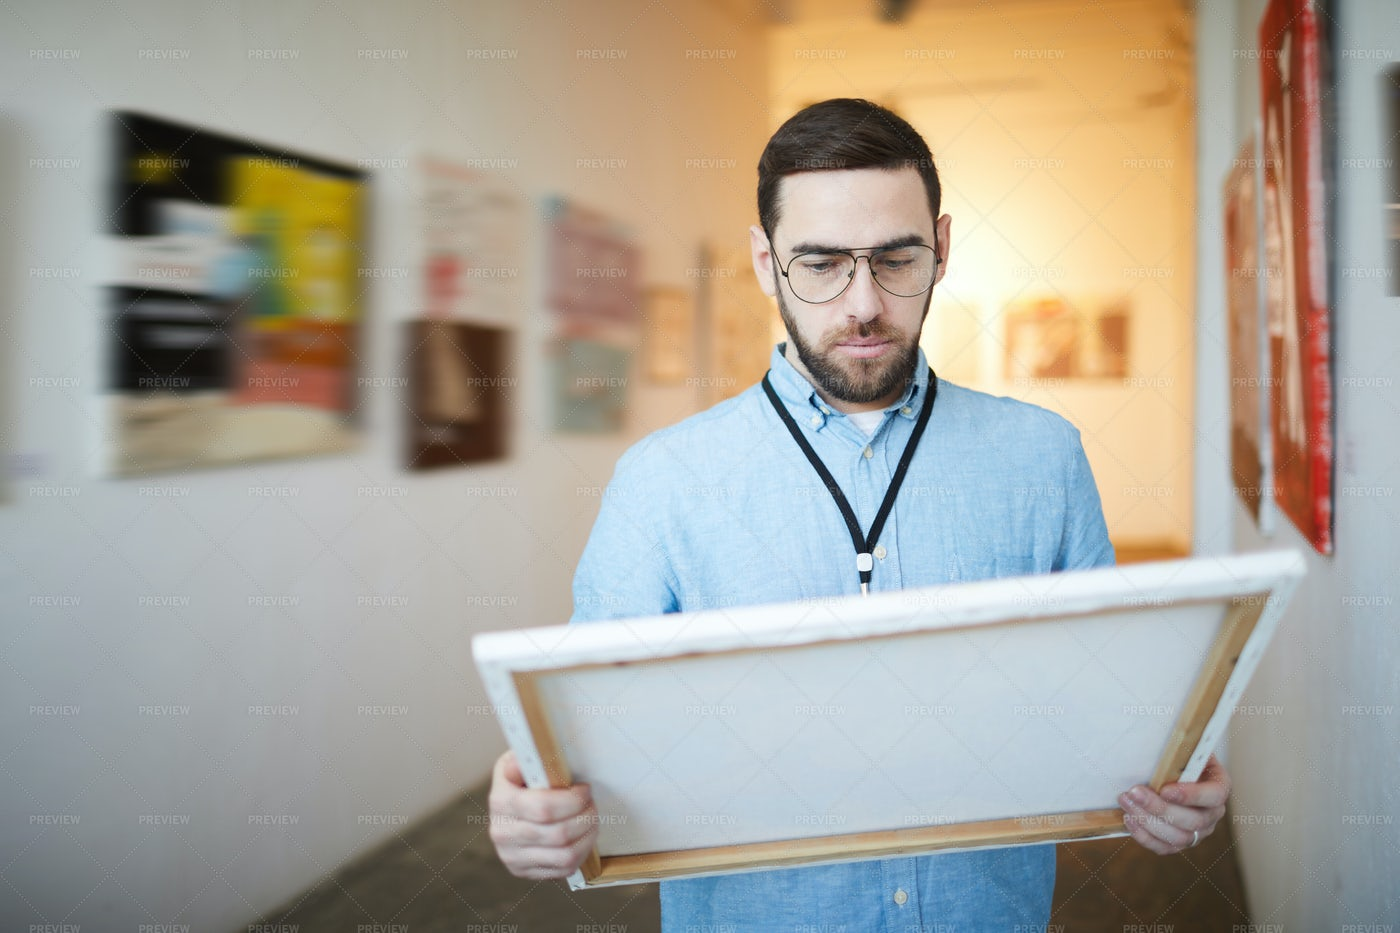 Man Buying Picture In Museum: Stock Photos